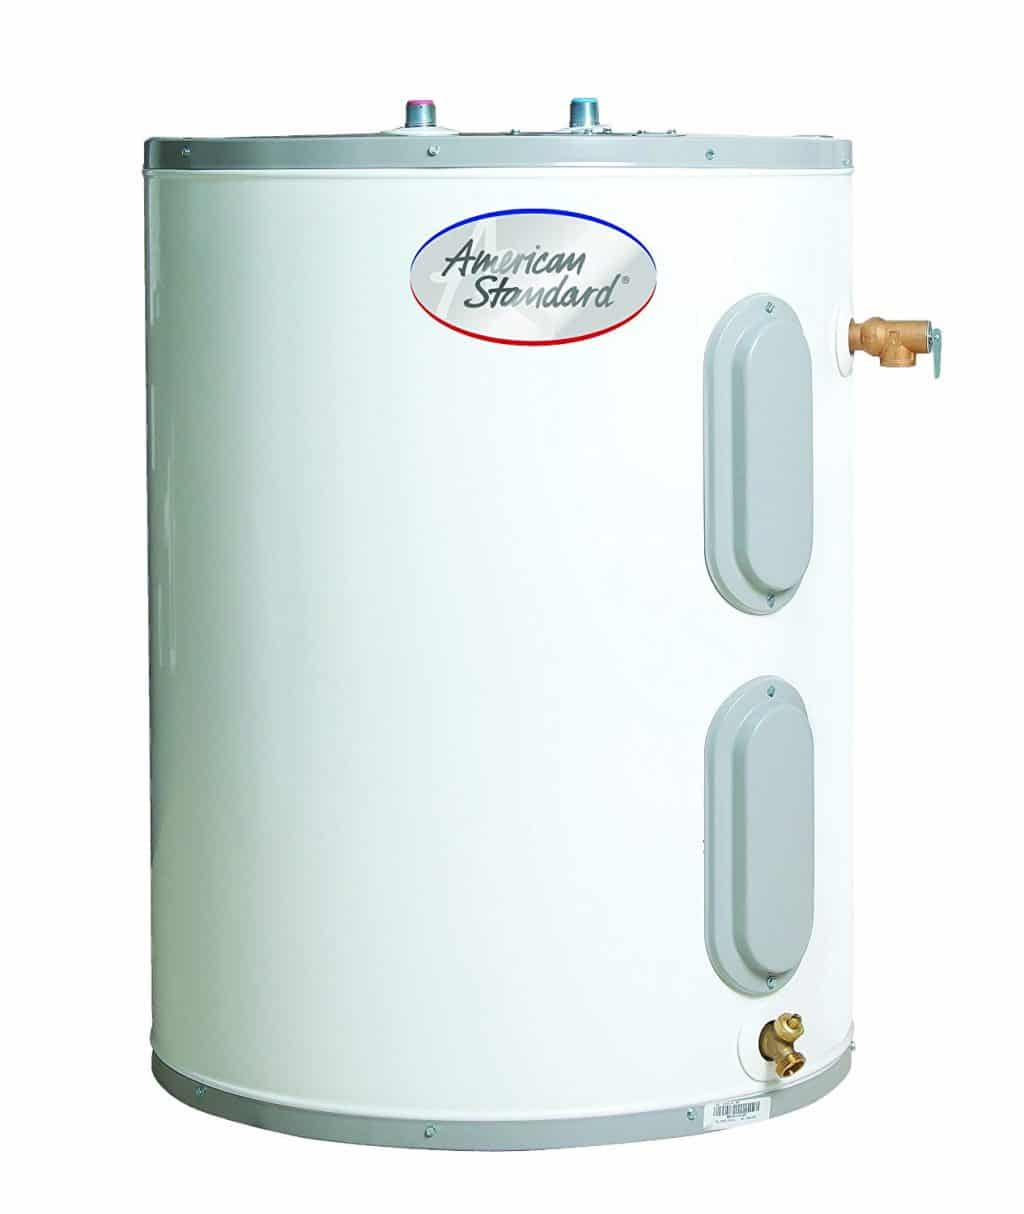 American Standard Hot Water Heater Reviews The 2019